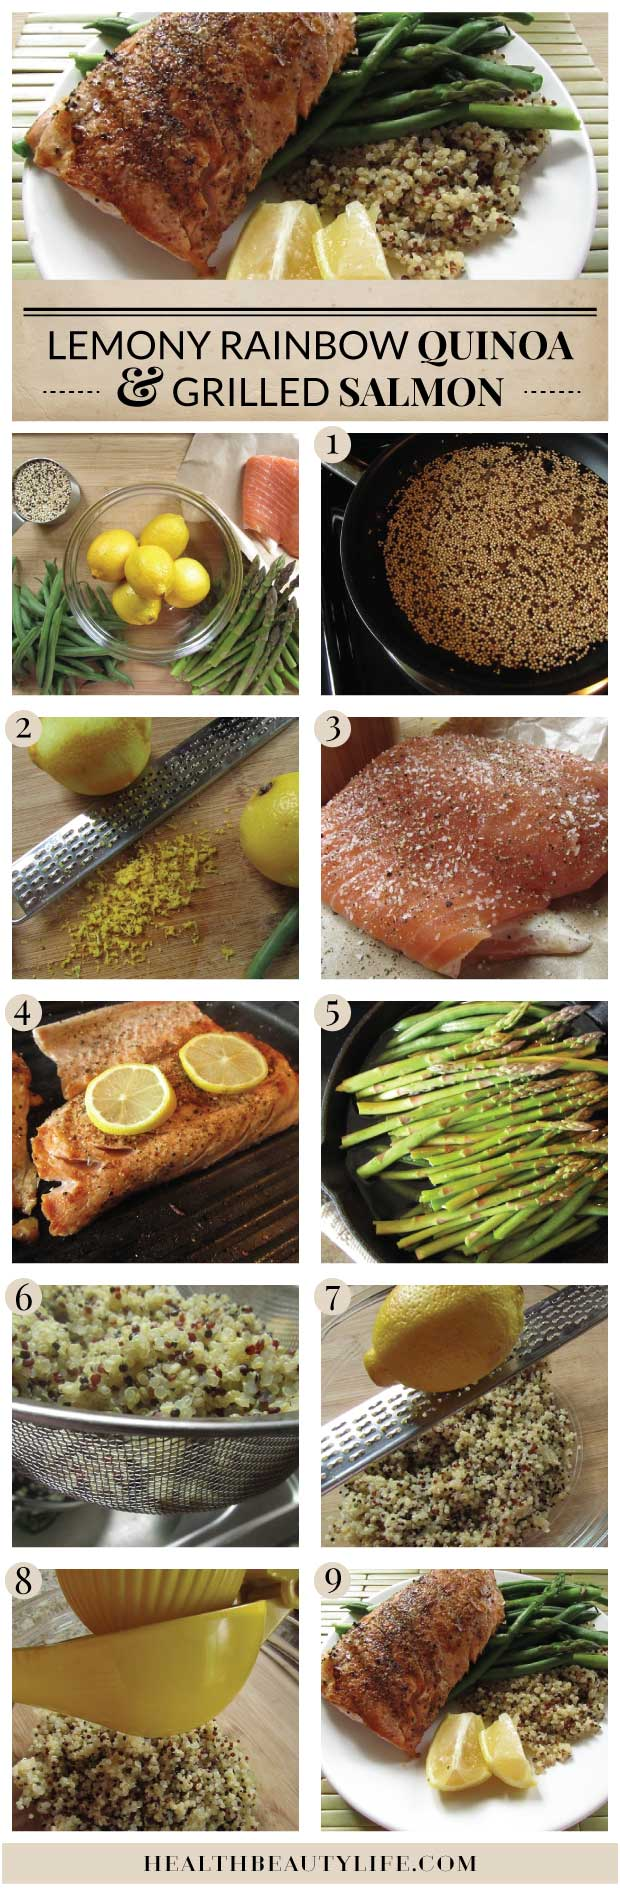 SALMON_QUINOA_RECIPE